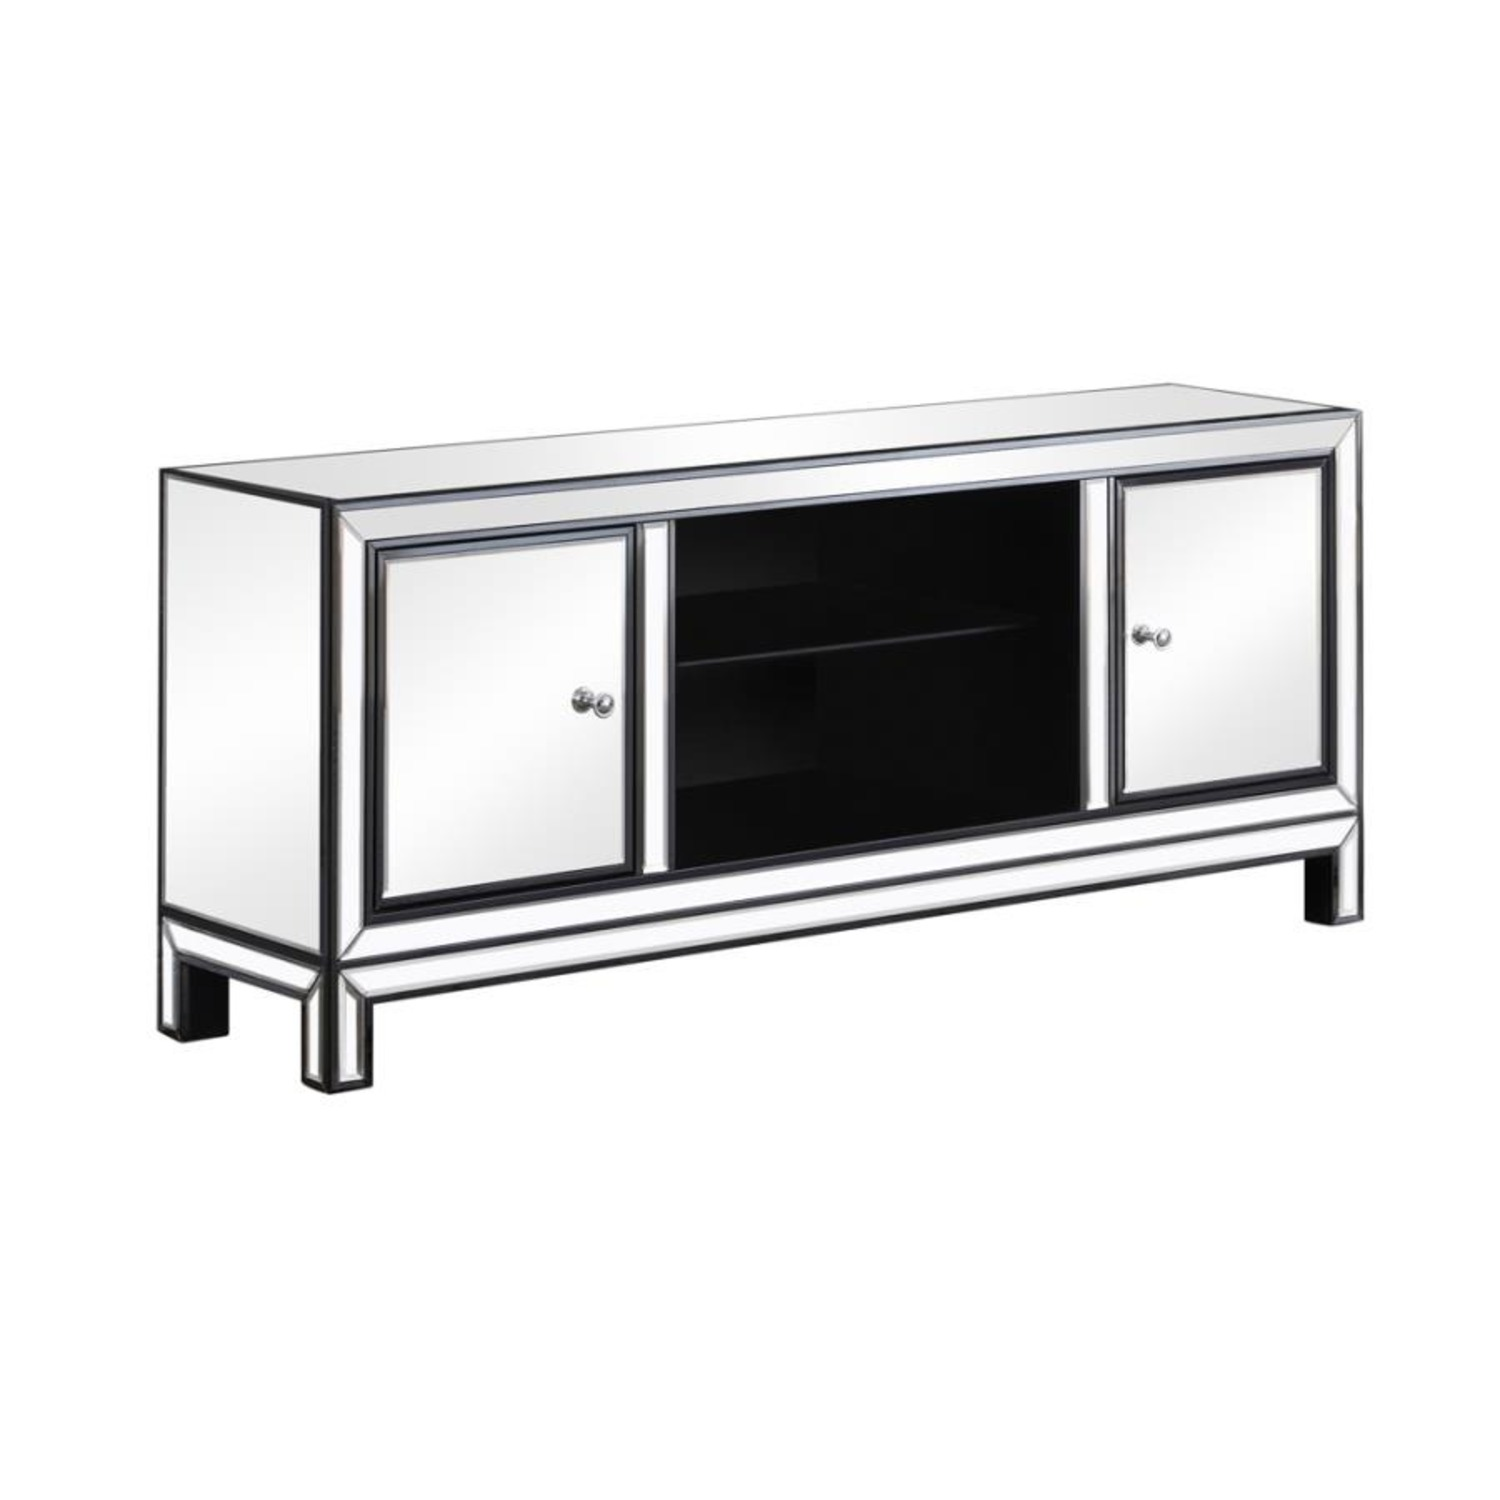 TV Console W/ Adjustable Shelf In Silver Finish - image-0